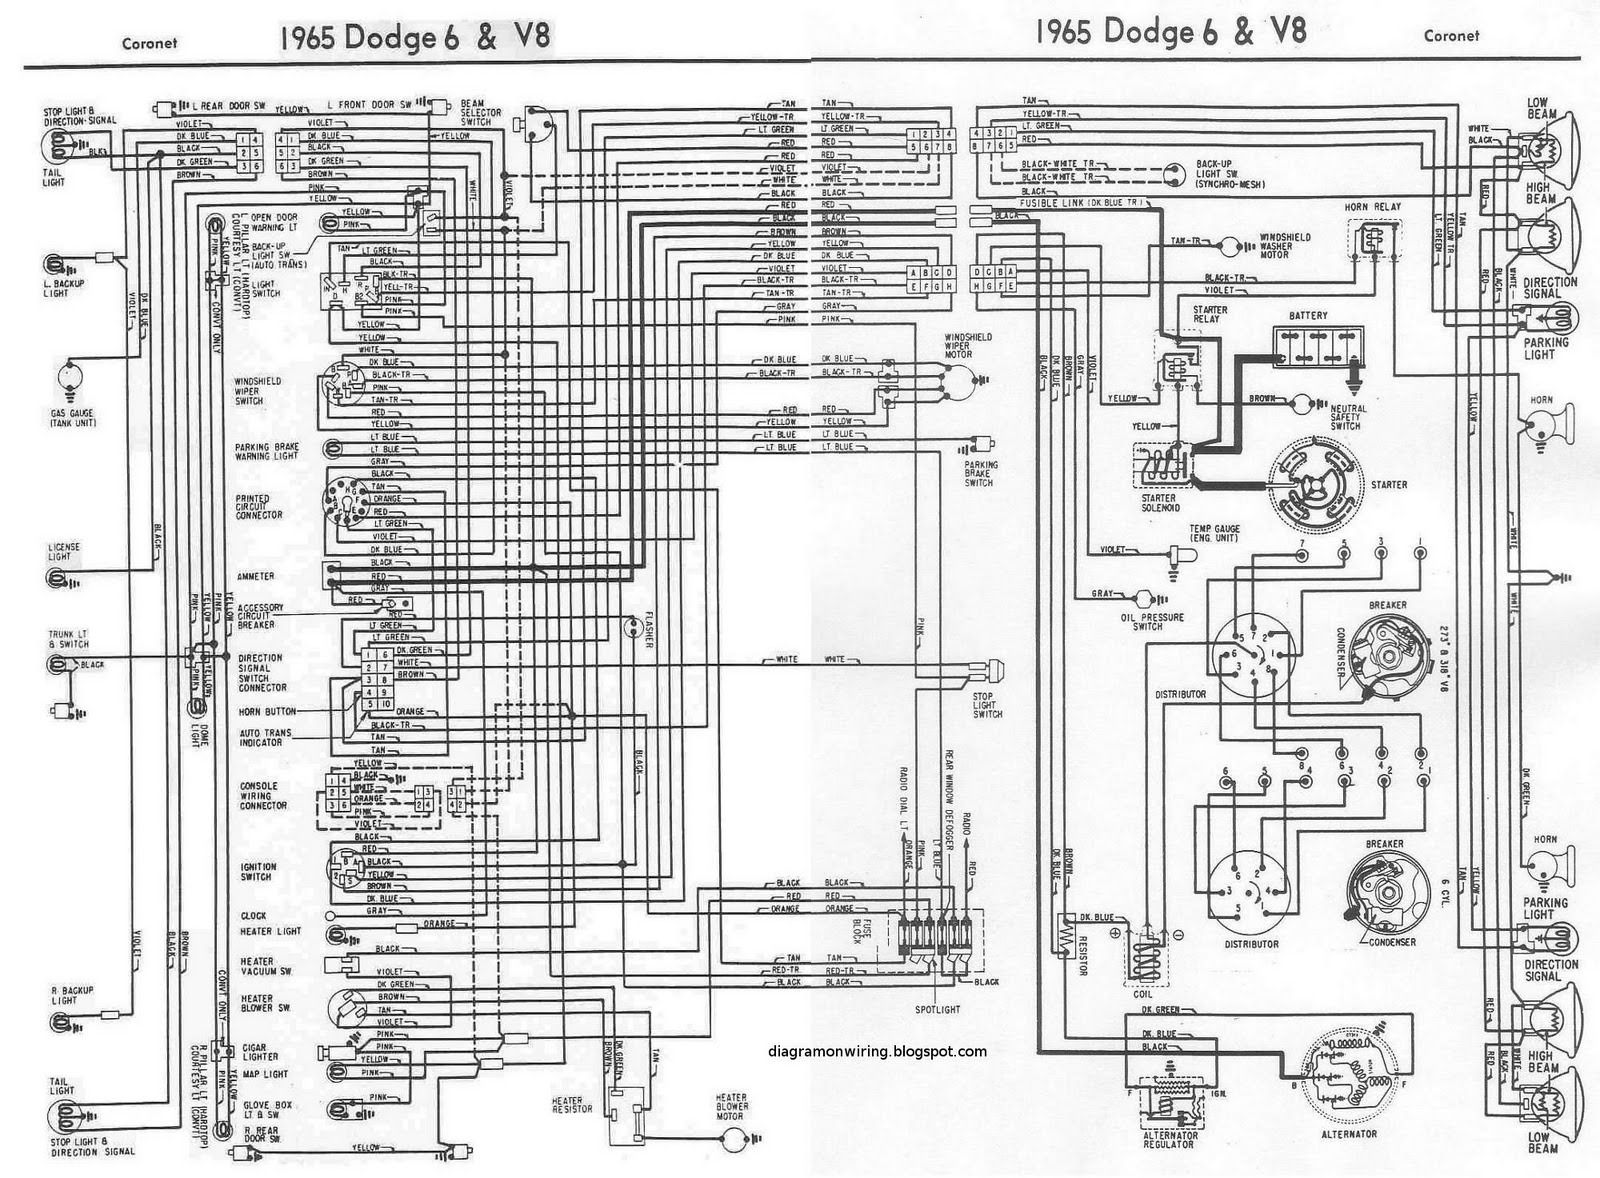 1967 Barracuda Wiring Diagram | Wiring Diagram on 71 cuda rear suspension, 68 charger wiring diagram, 61 impala wiring diagram, 71 cuda wiper motor, 70 cuda wiring diagram, 1967 pontiac gto wiring diagram, 70 charger wiring diagram, 67 camaro wiring diagram,